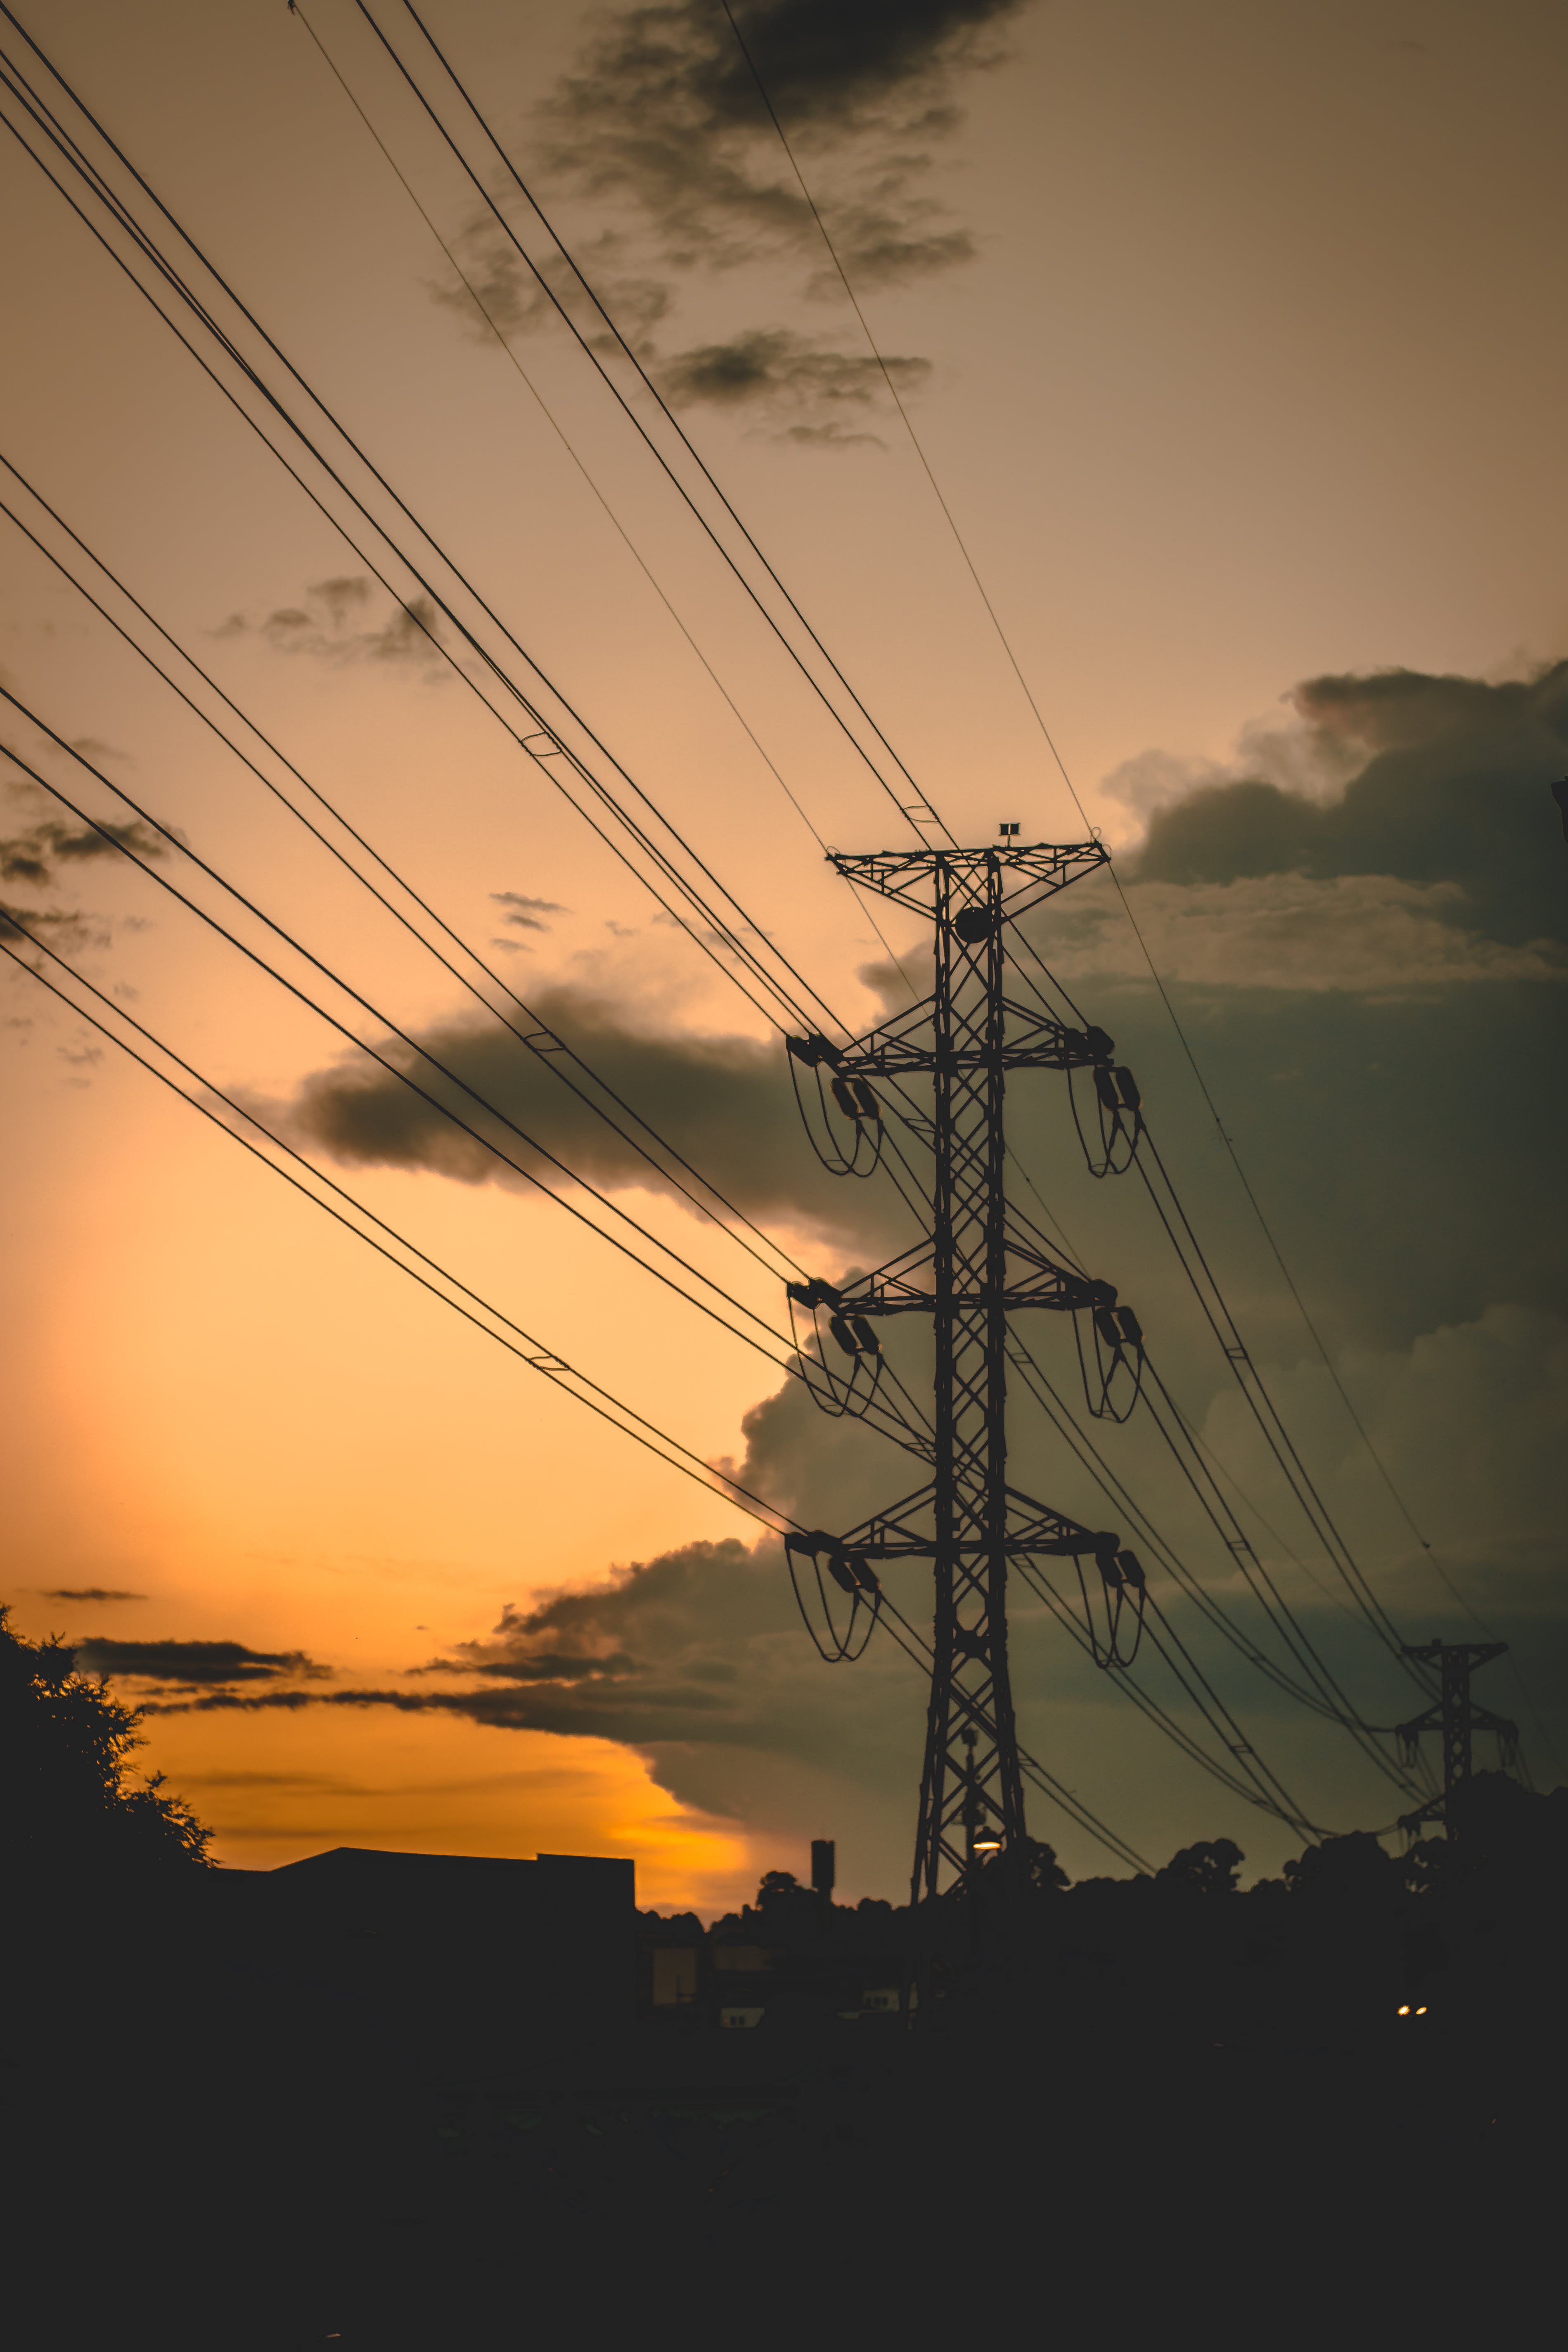 Black Power Line at Sunset